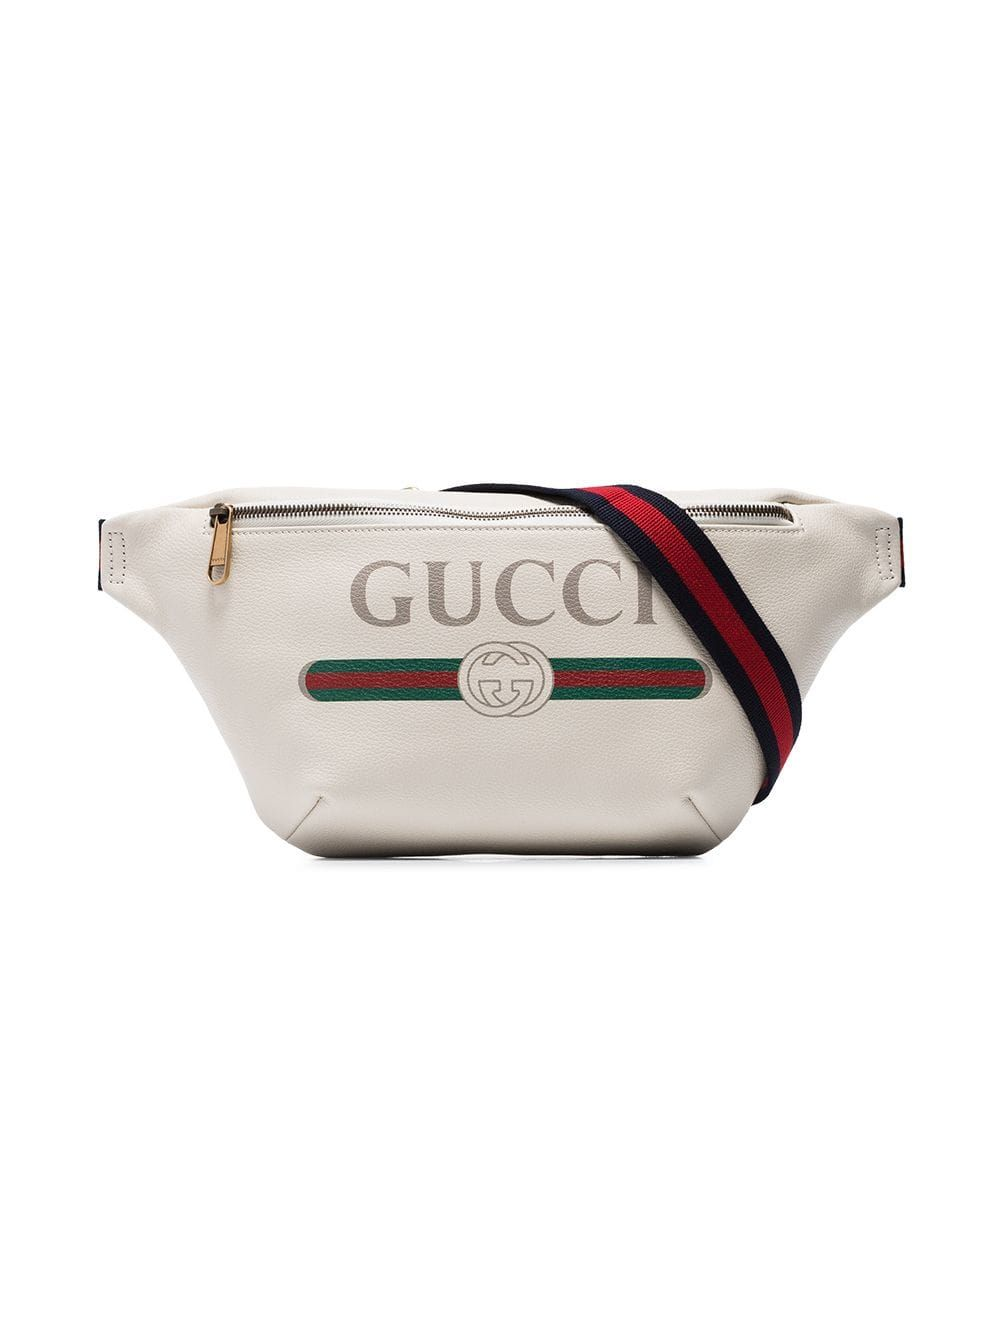 9fe8572eec7 GUCCI GUCCI WHITE LOGO EMBELLISHED LEATHER CROSSBODY BAG.  gucci  bags  shoulder  bags. Visit. February 2019